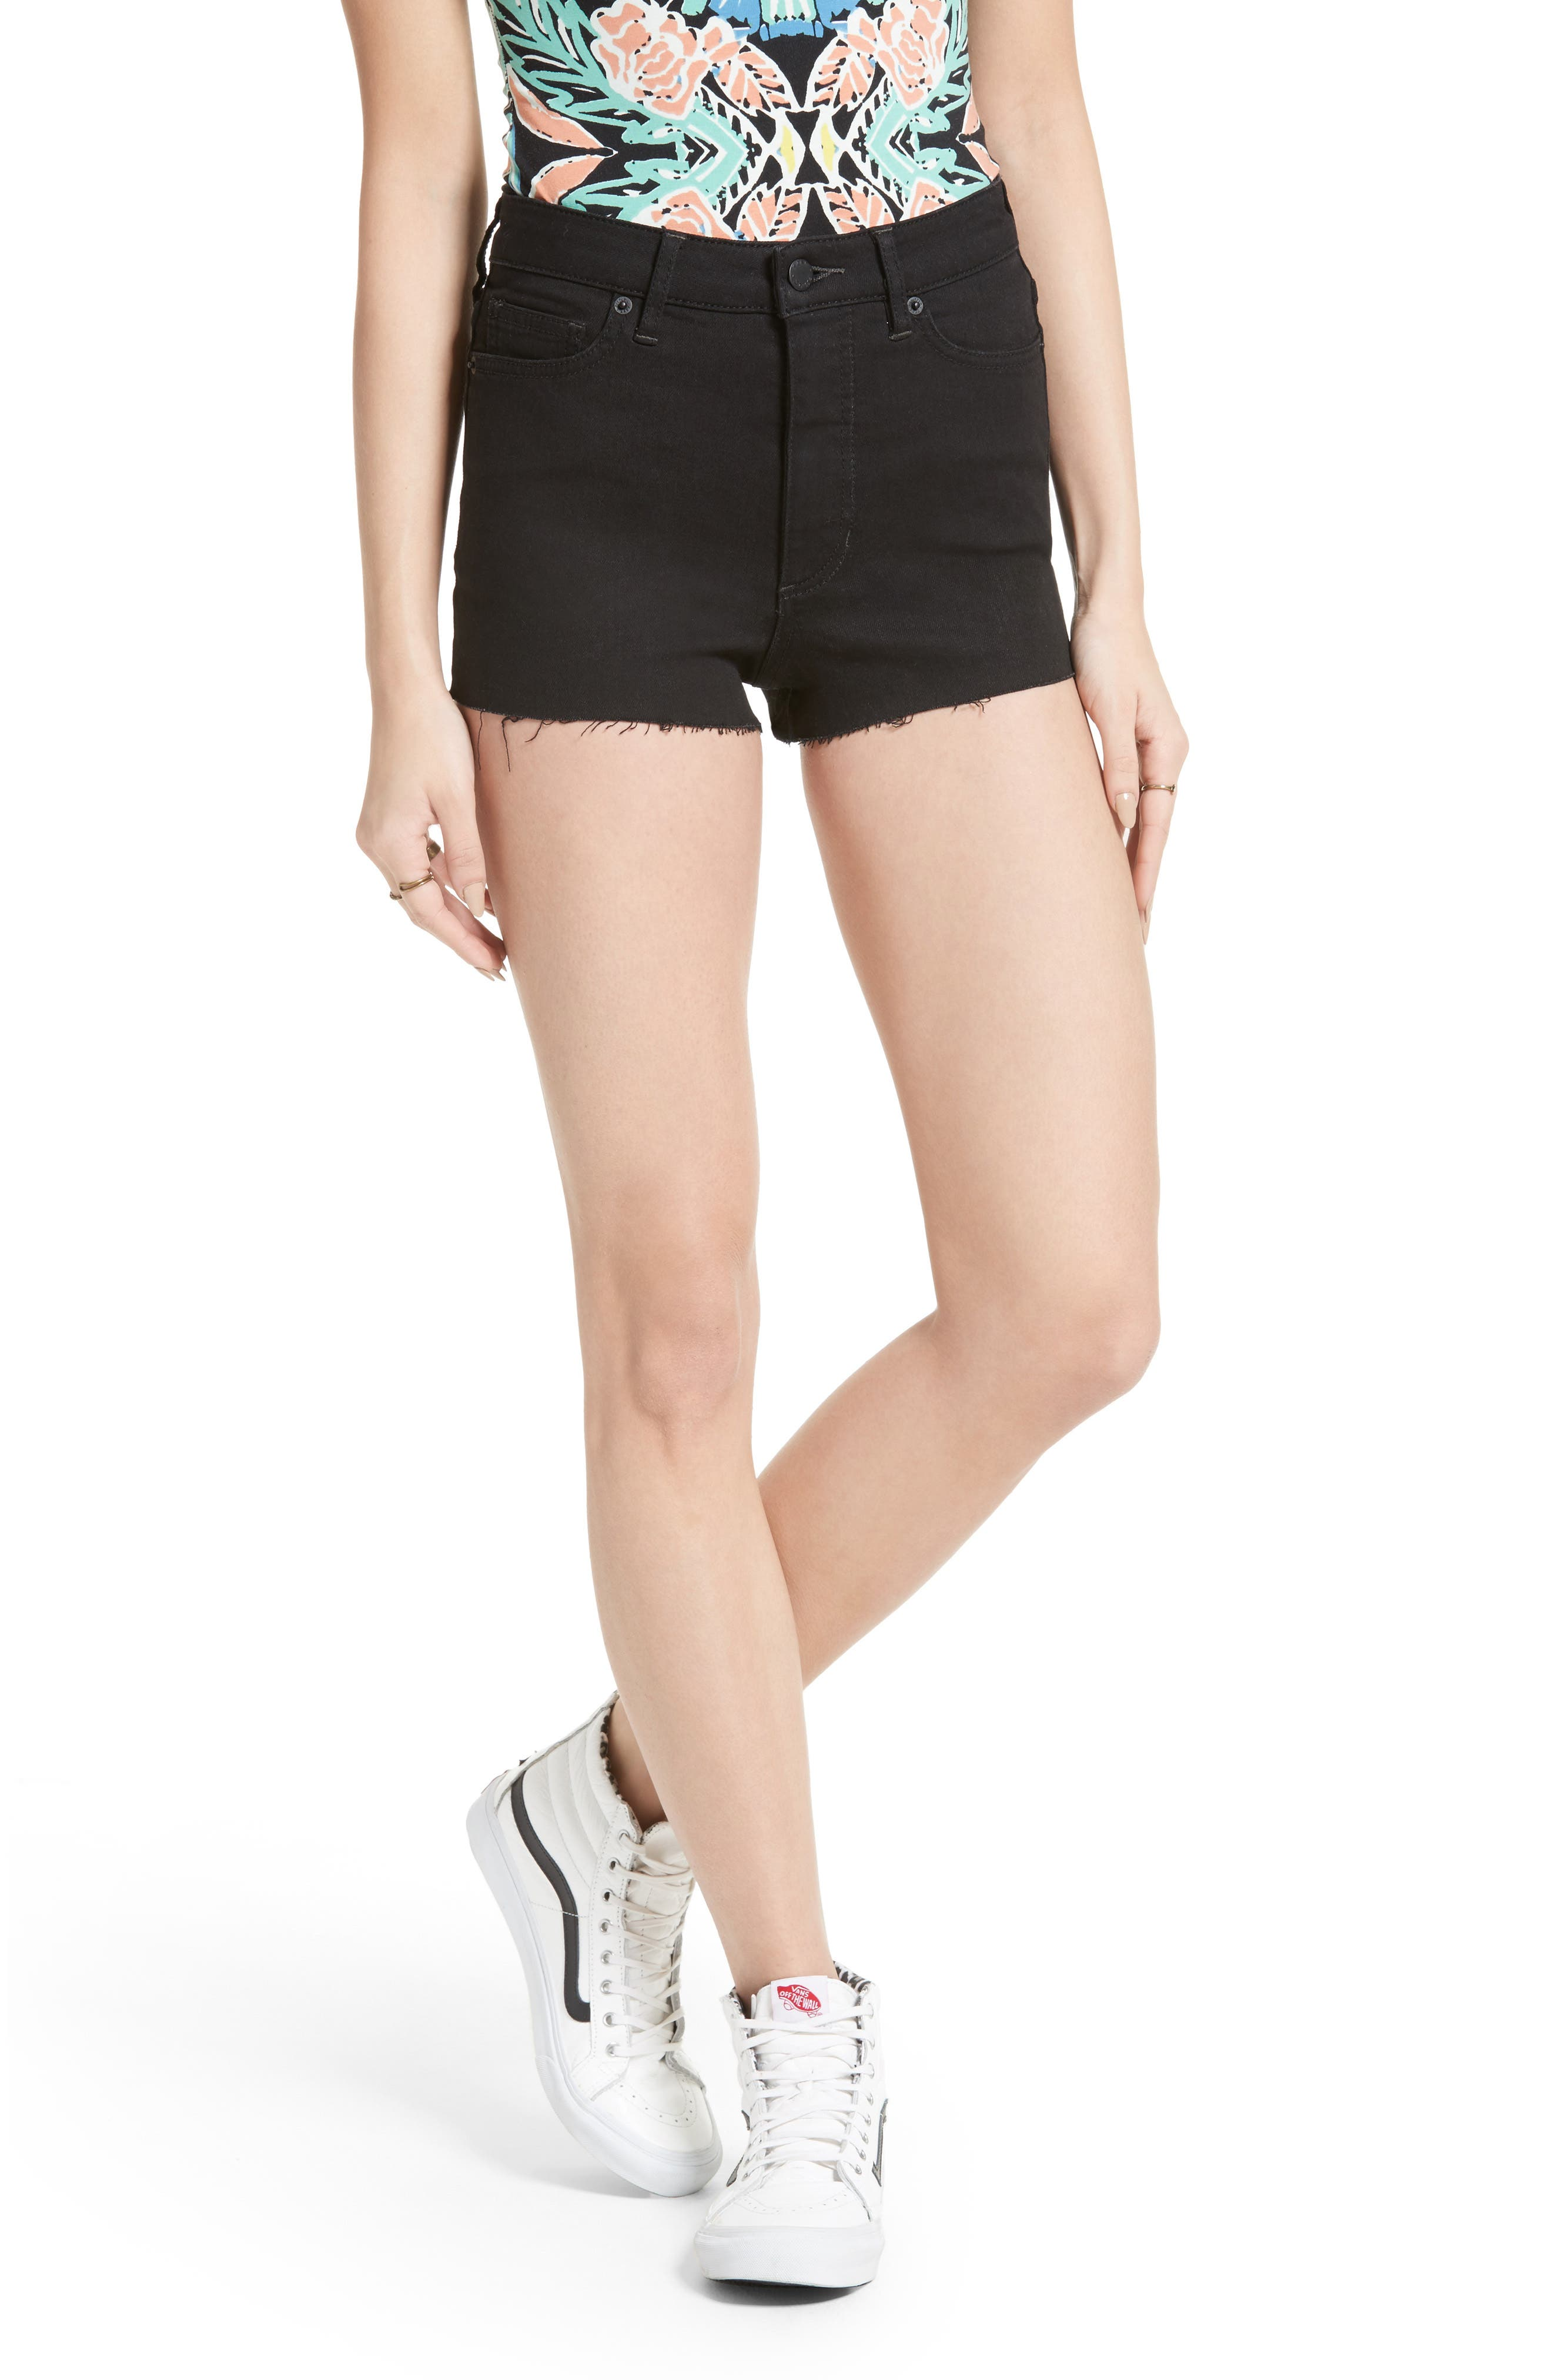 Alternate Image 1 Selected - Free People High Rise Cutoff Shorts